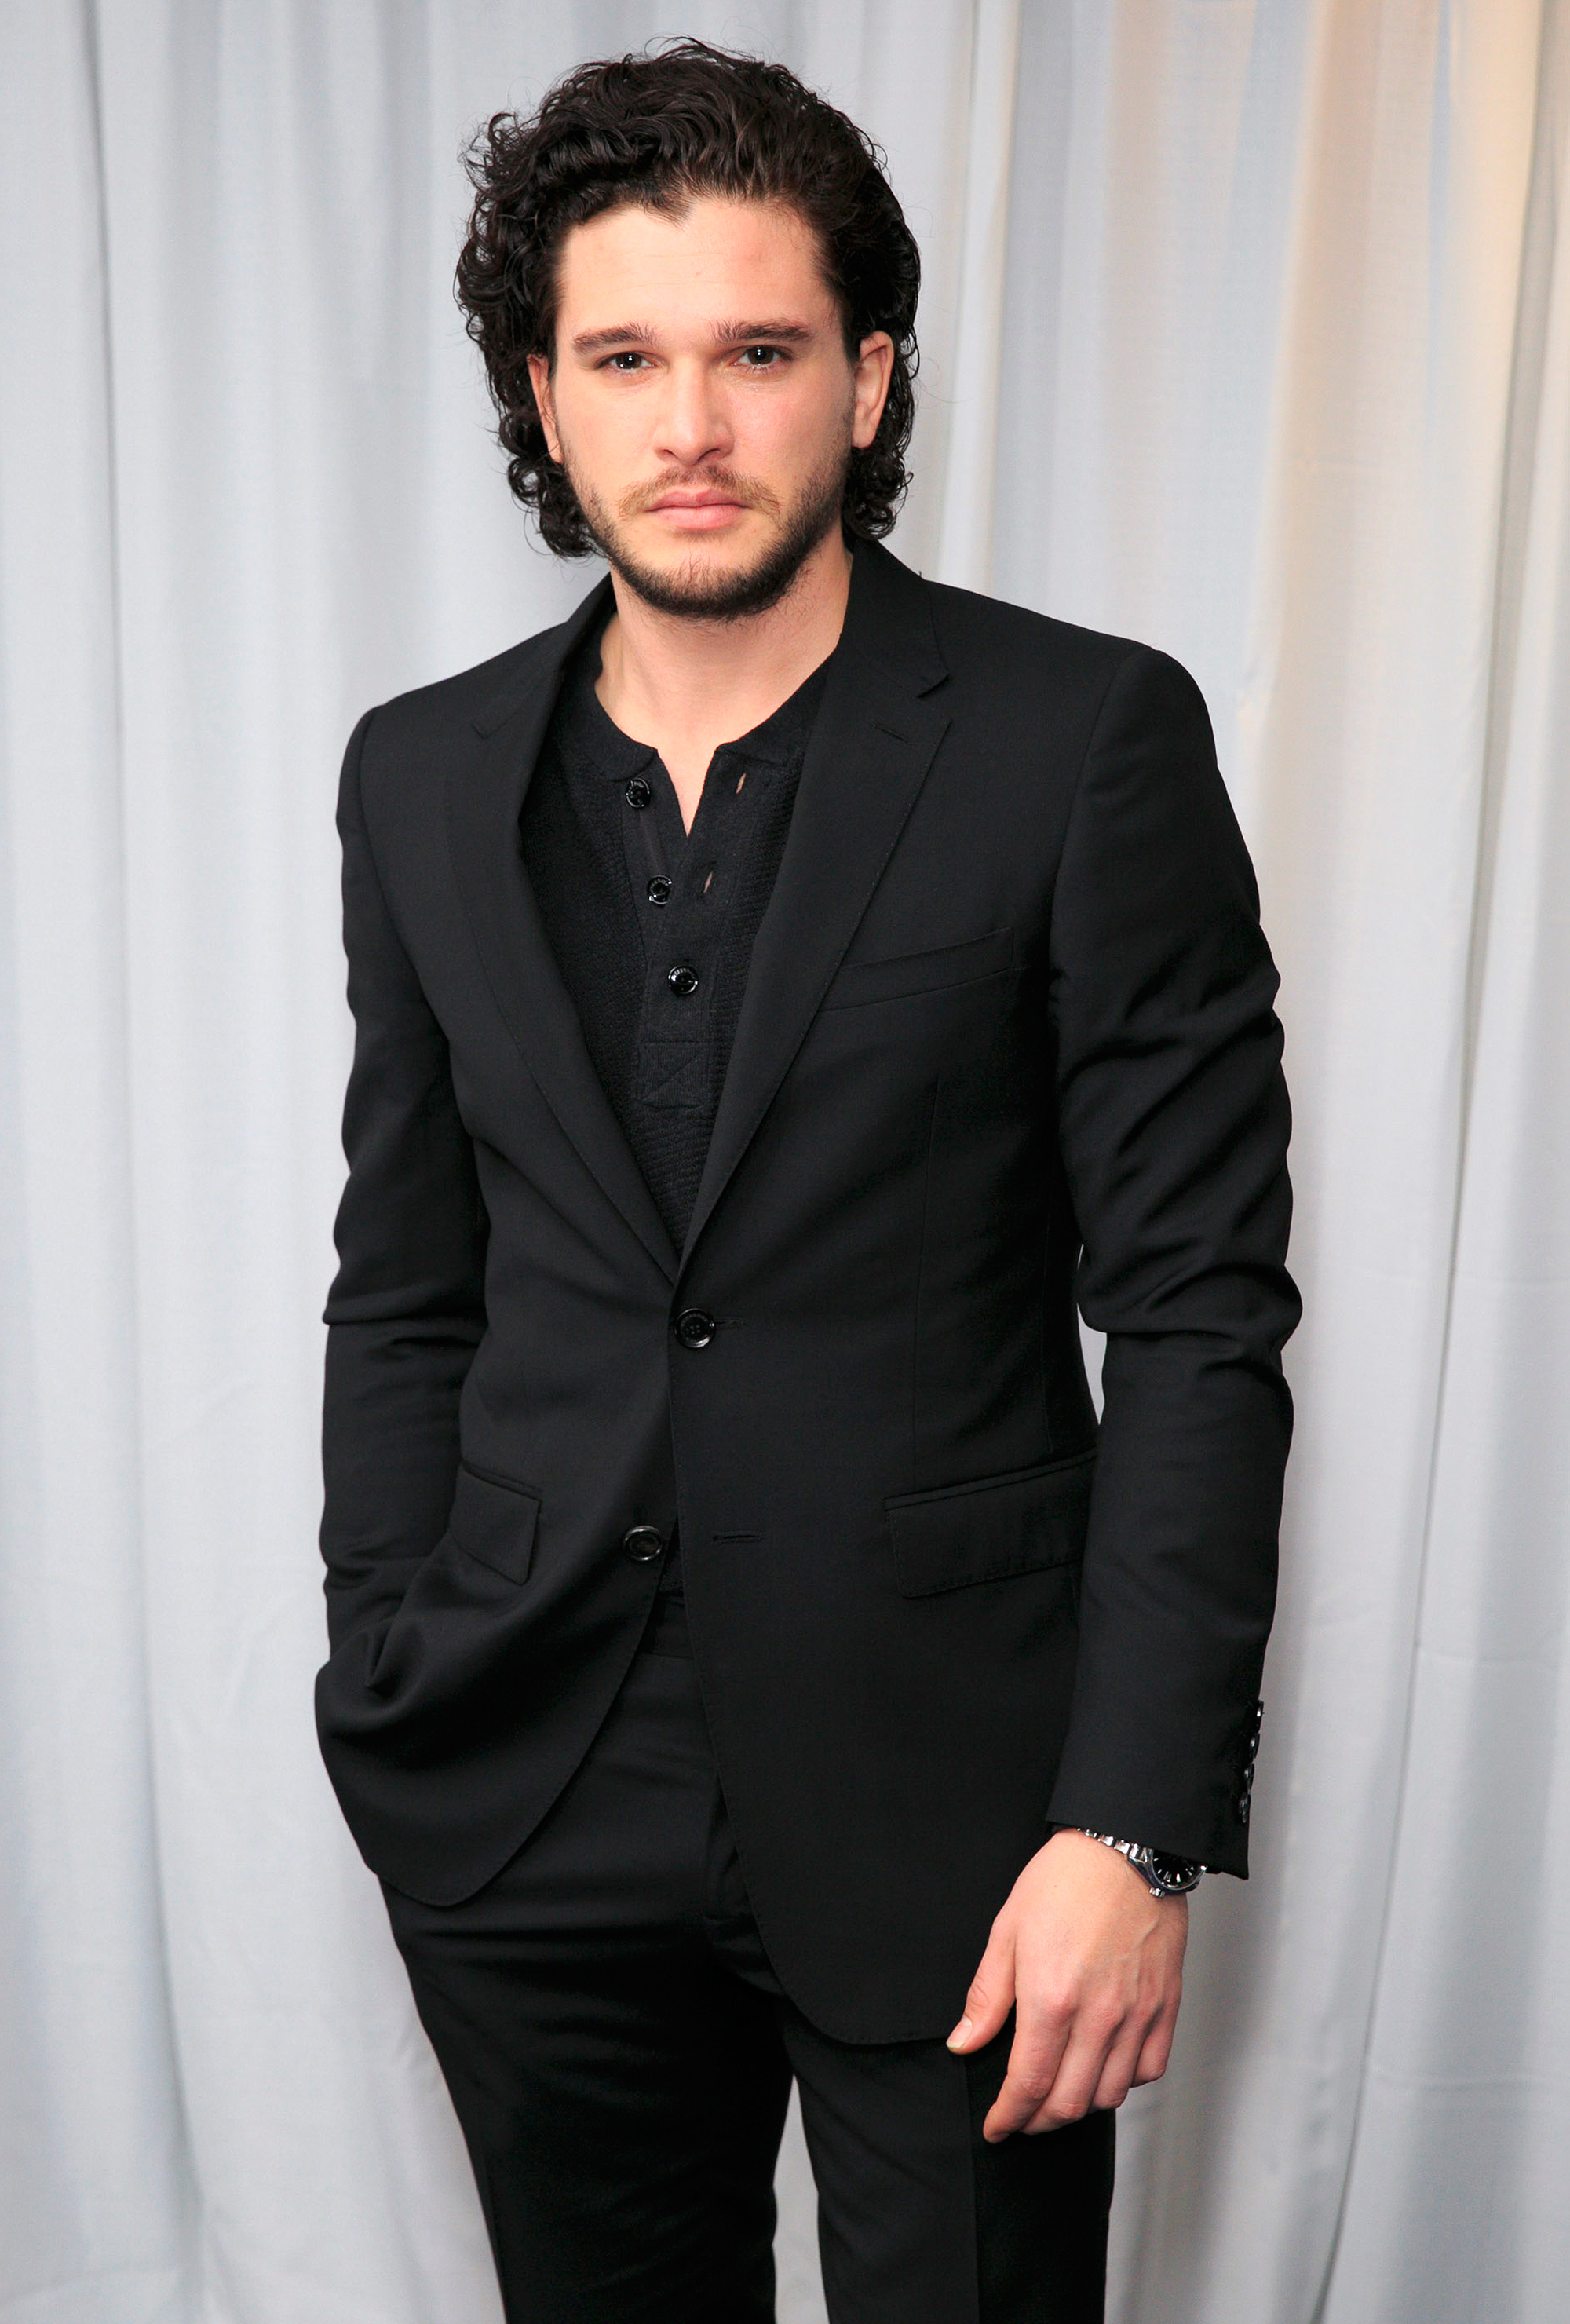 Kit Harington Says He Wants to Be a Dad After Game of Thrones Officially Ends: 'Hopefully, I'll Be a Father'